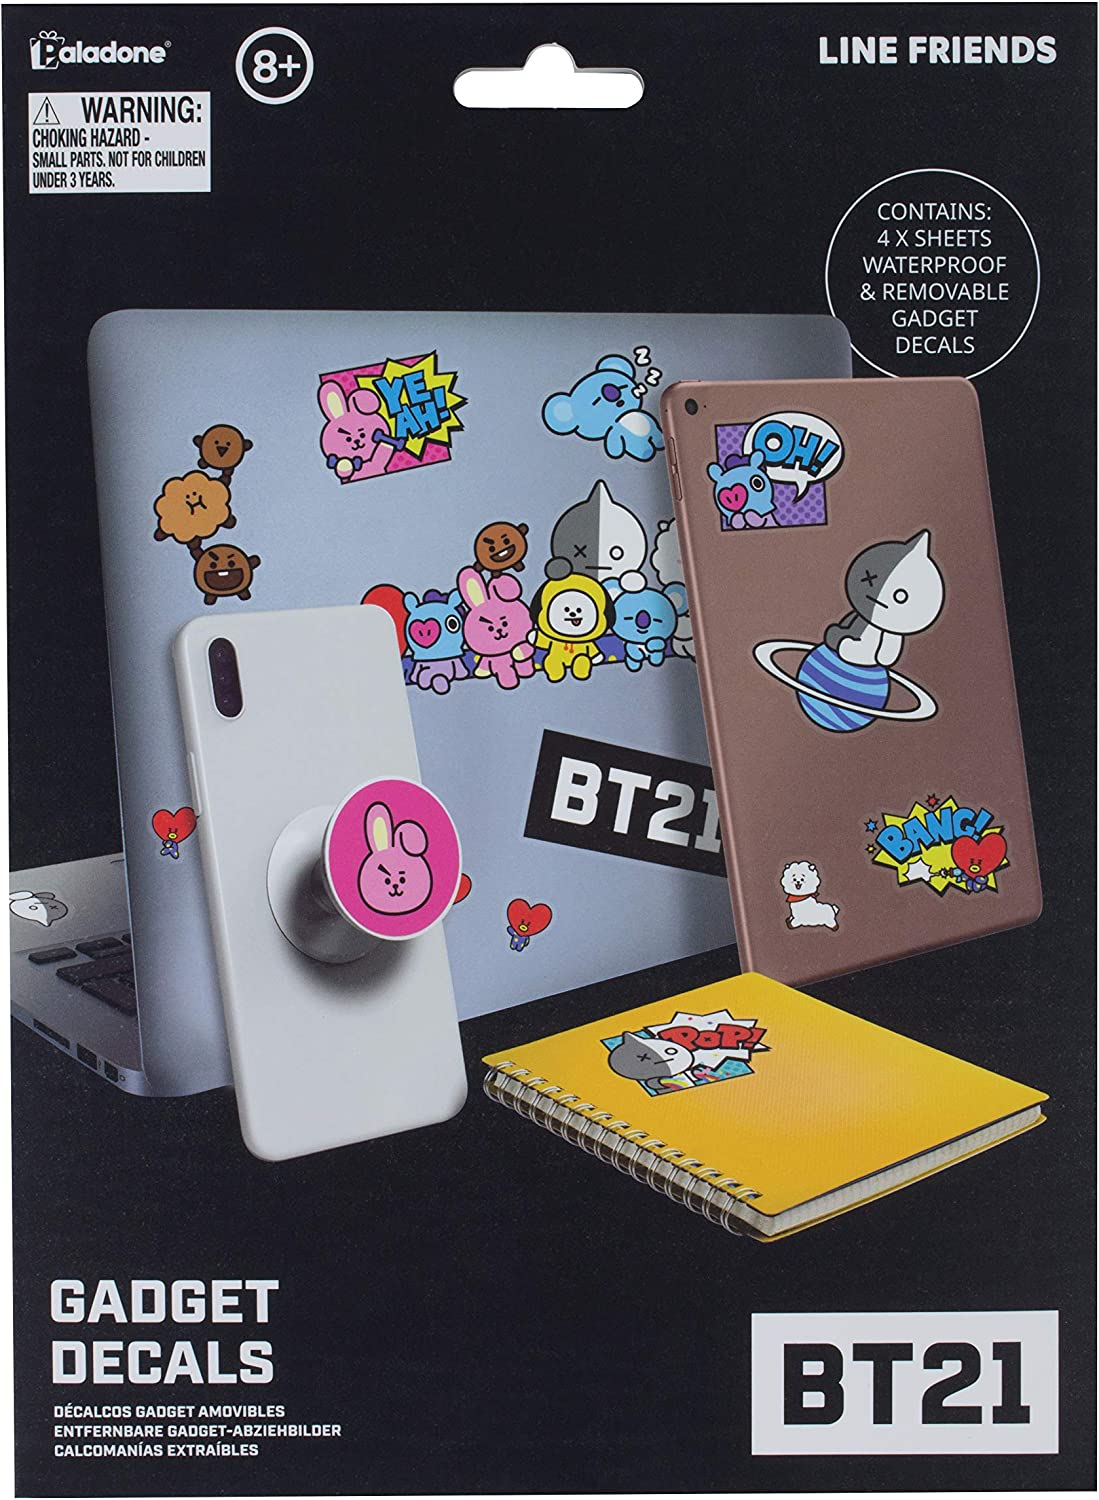 BT21 Line Friends Gadget Decals - 4 Sheets of Waterproof Removable Laptop Stickers